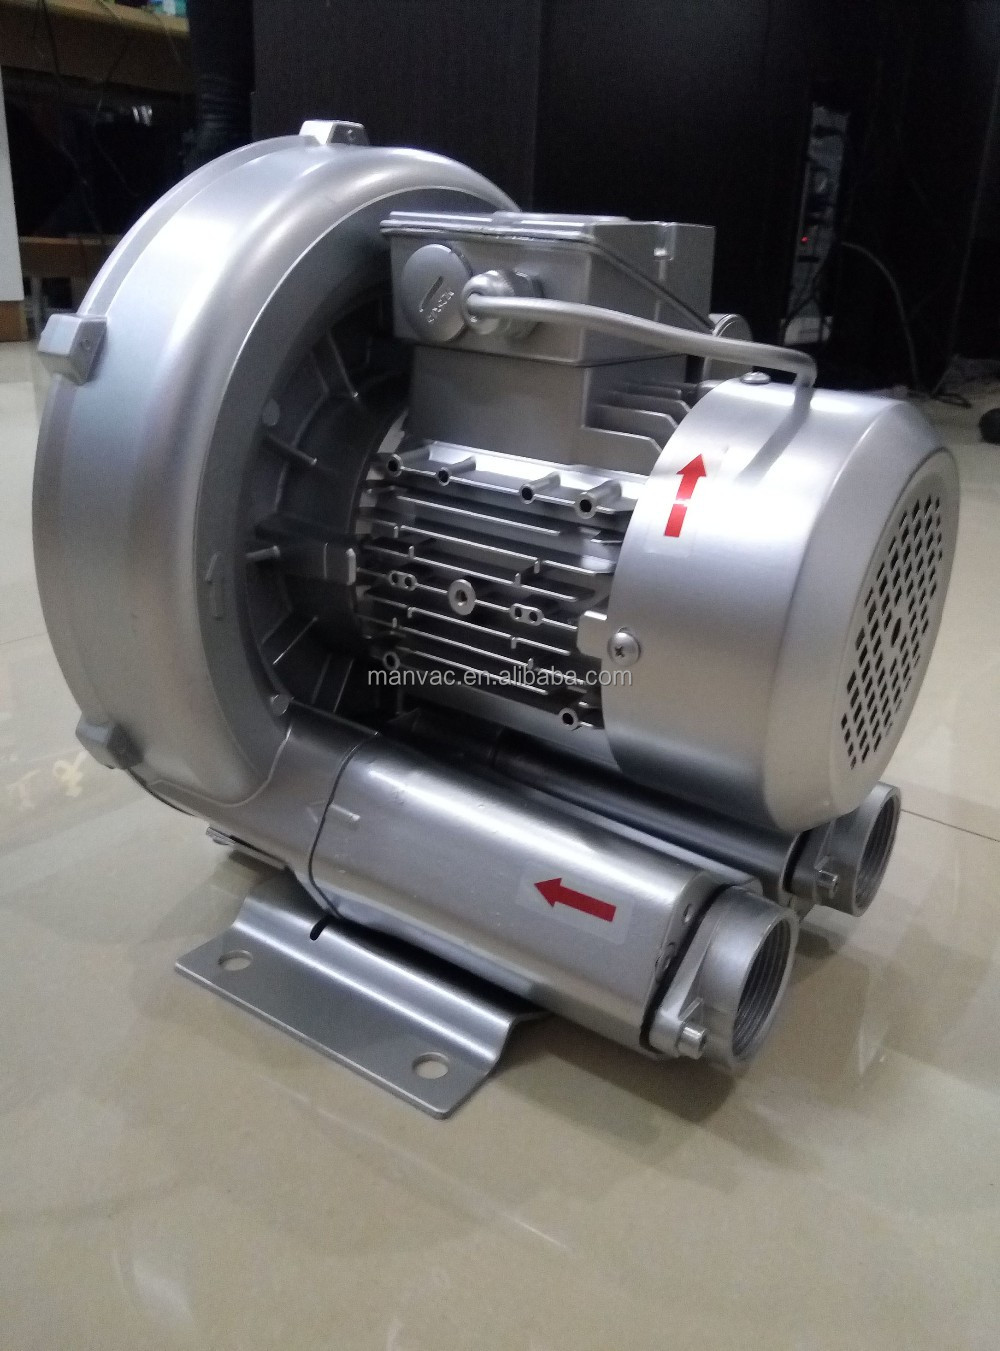 China factory price 0.37kw LD 004 H21 <strong>R12</strong> single phase industrial impeller air blower centrifugal fan